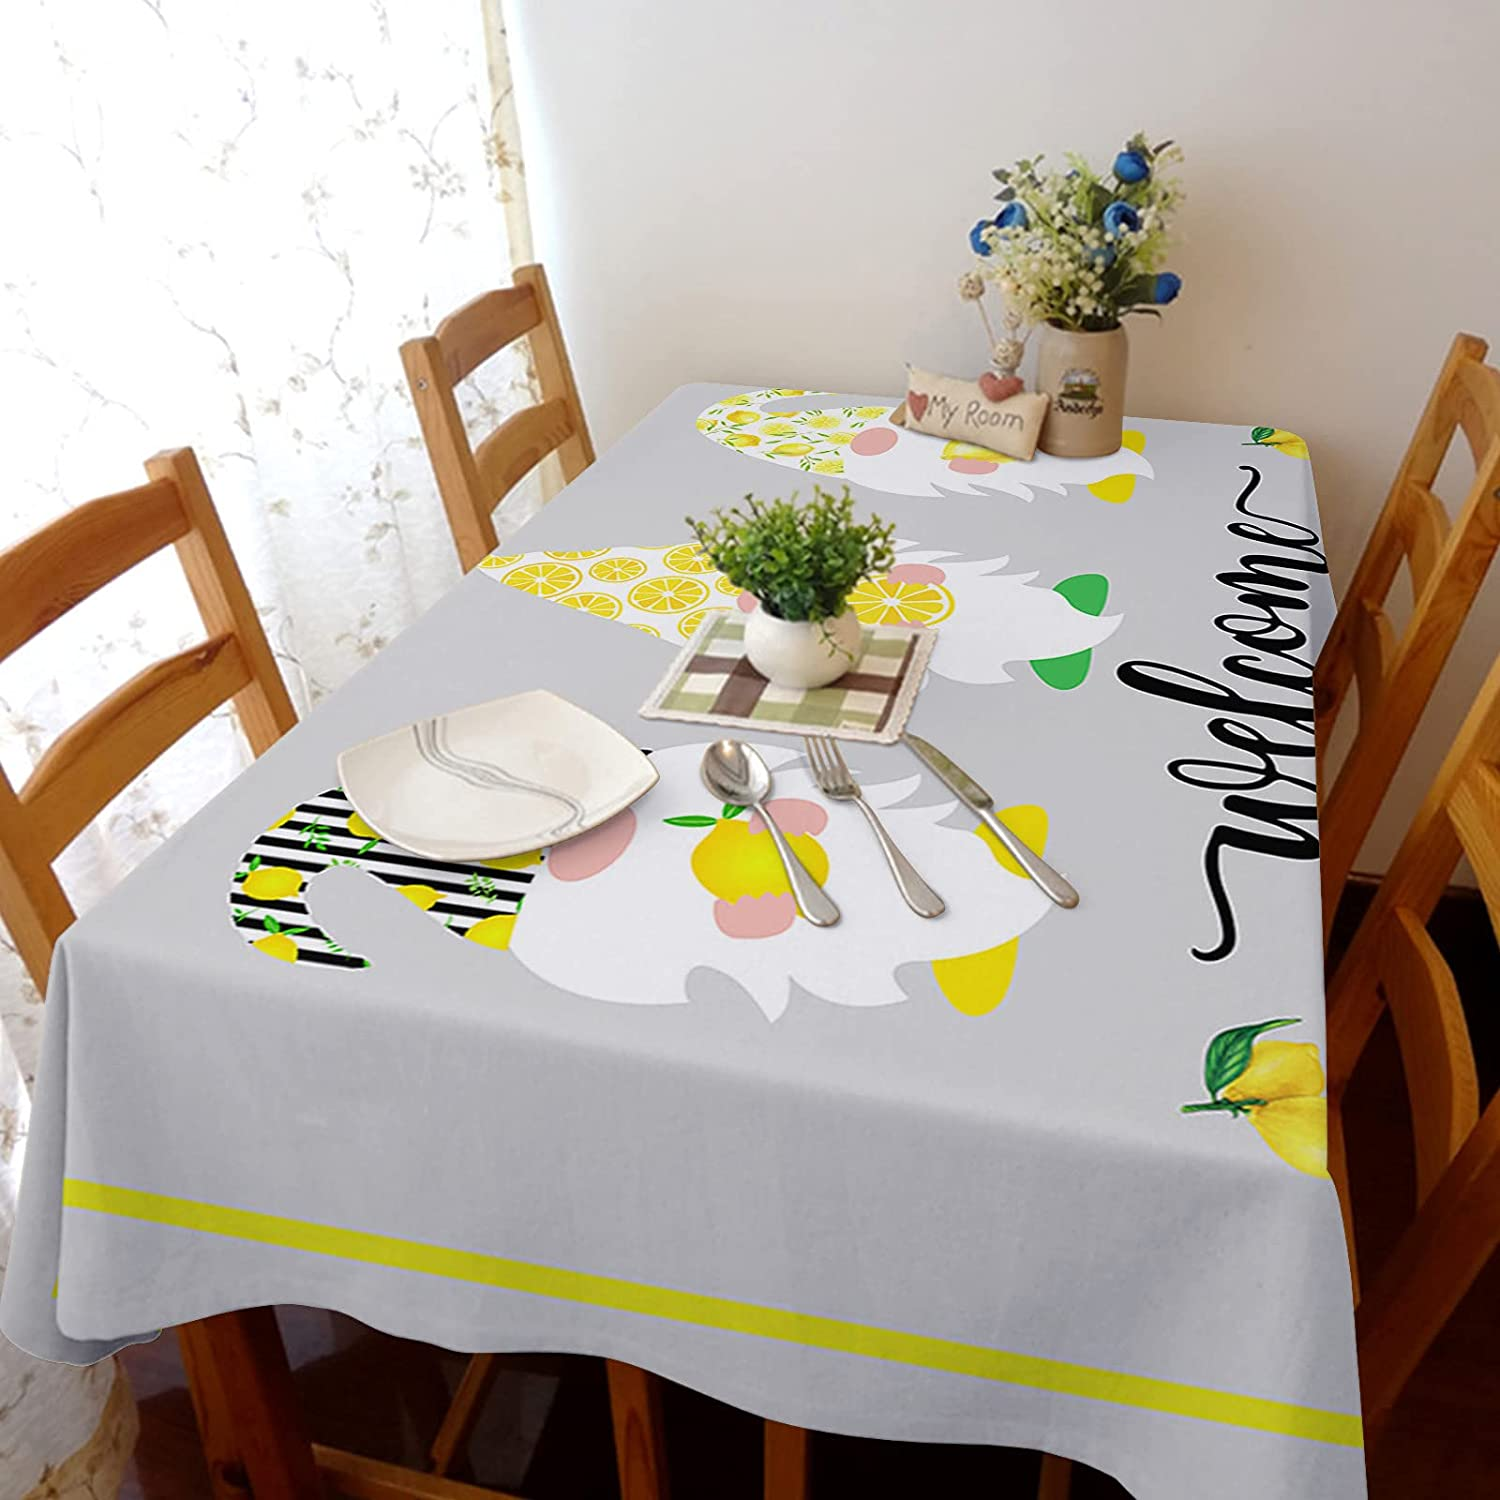 shop Queenker Rectangle Tablecloth Dining Table Lemon Max 58% OFF Cover Gnom Farm